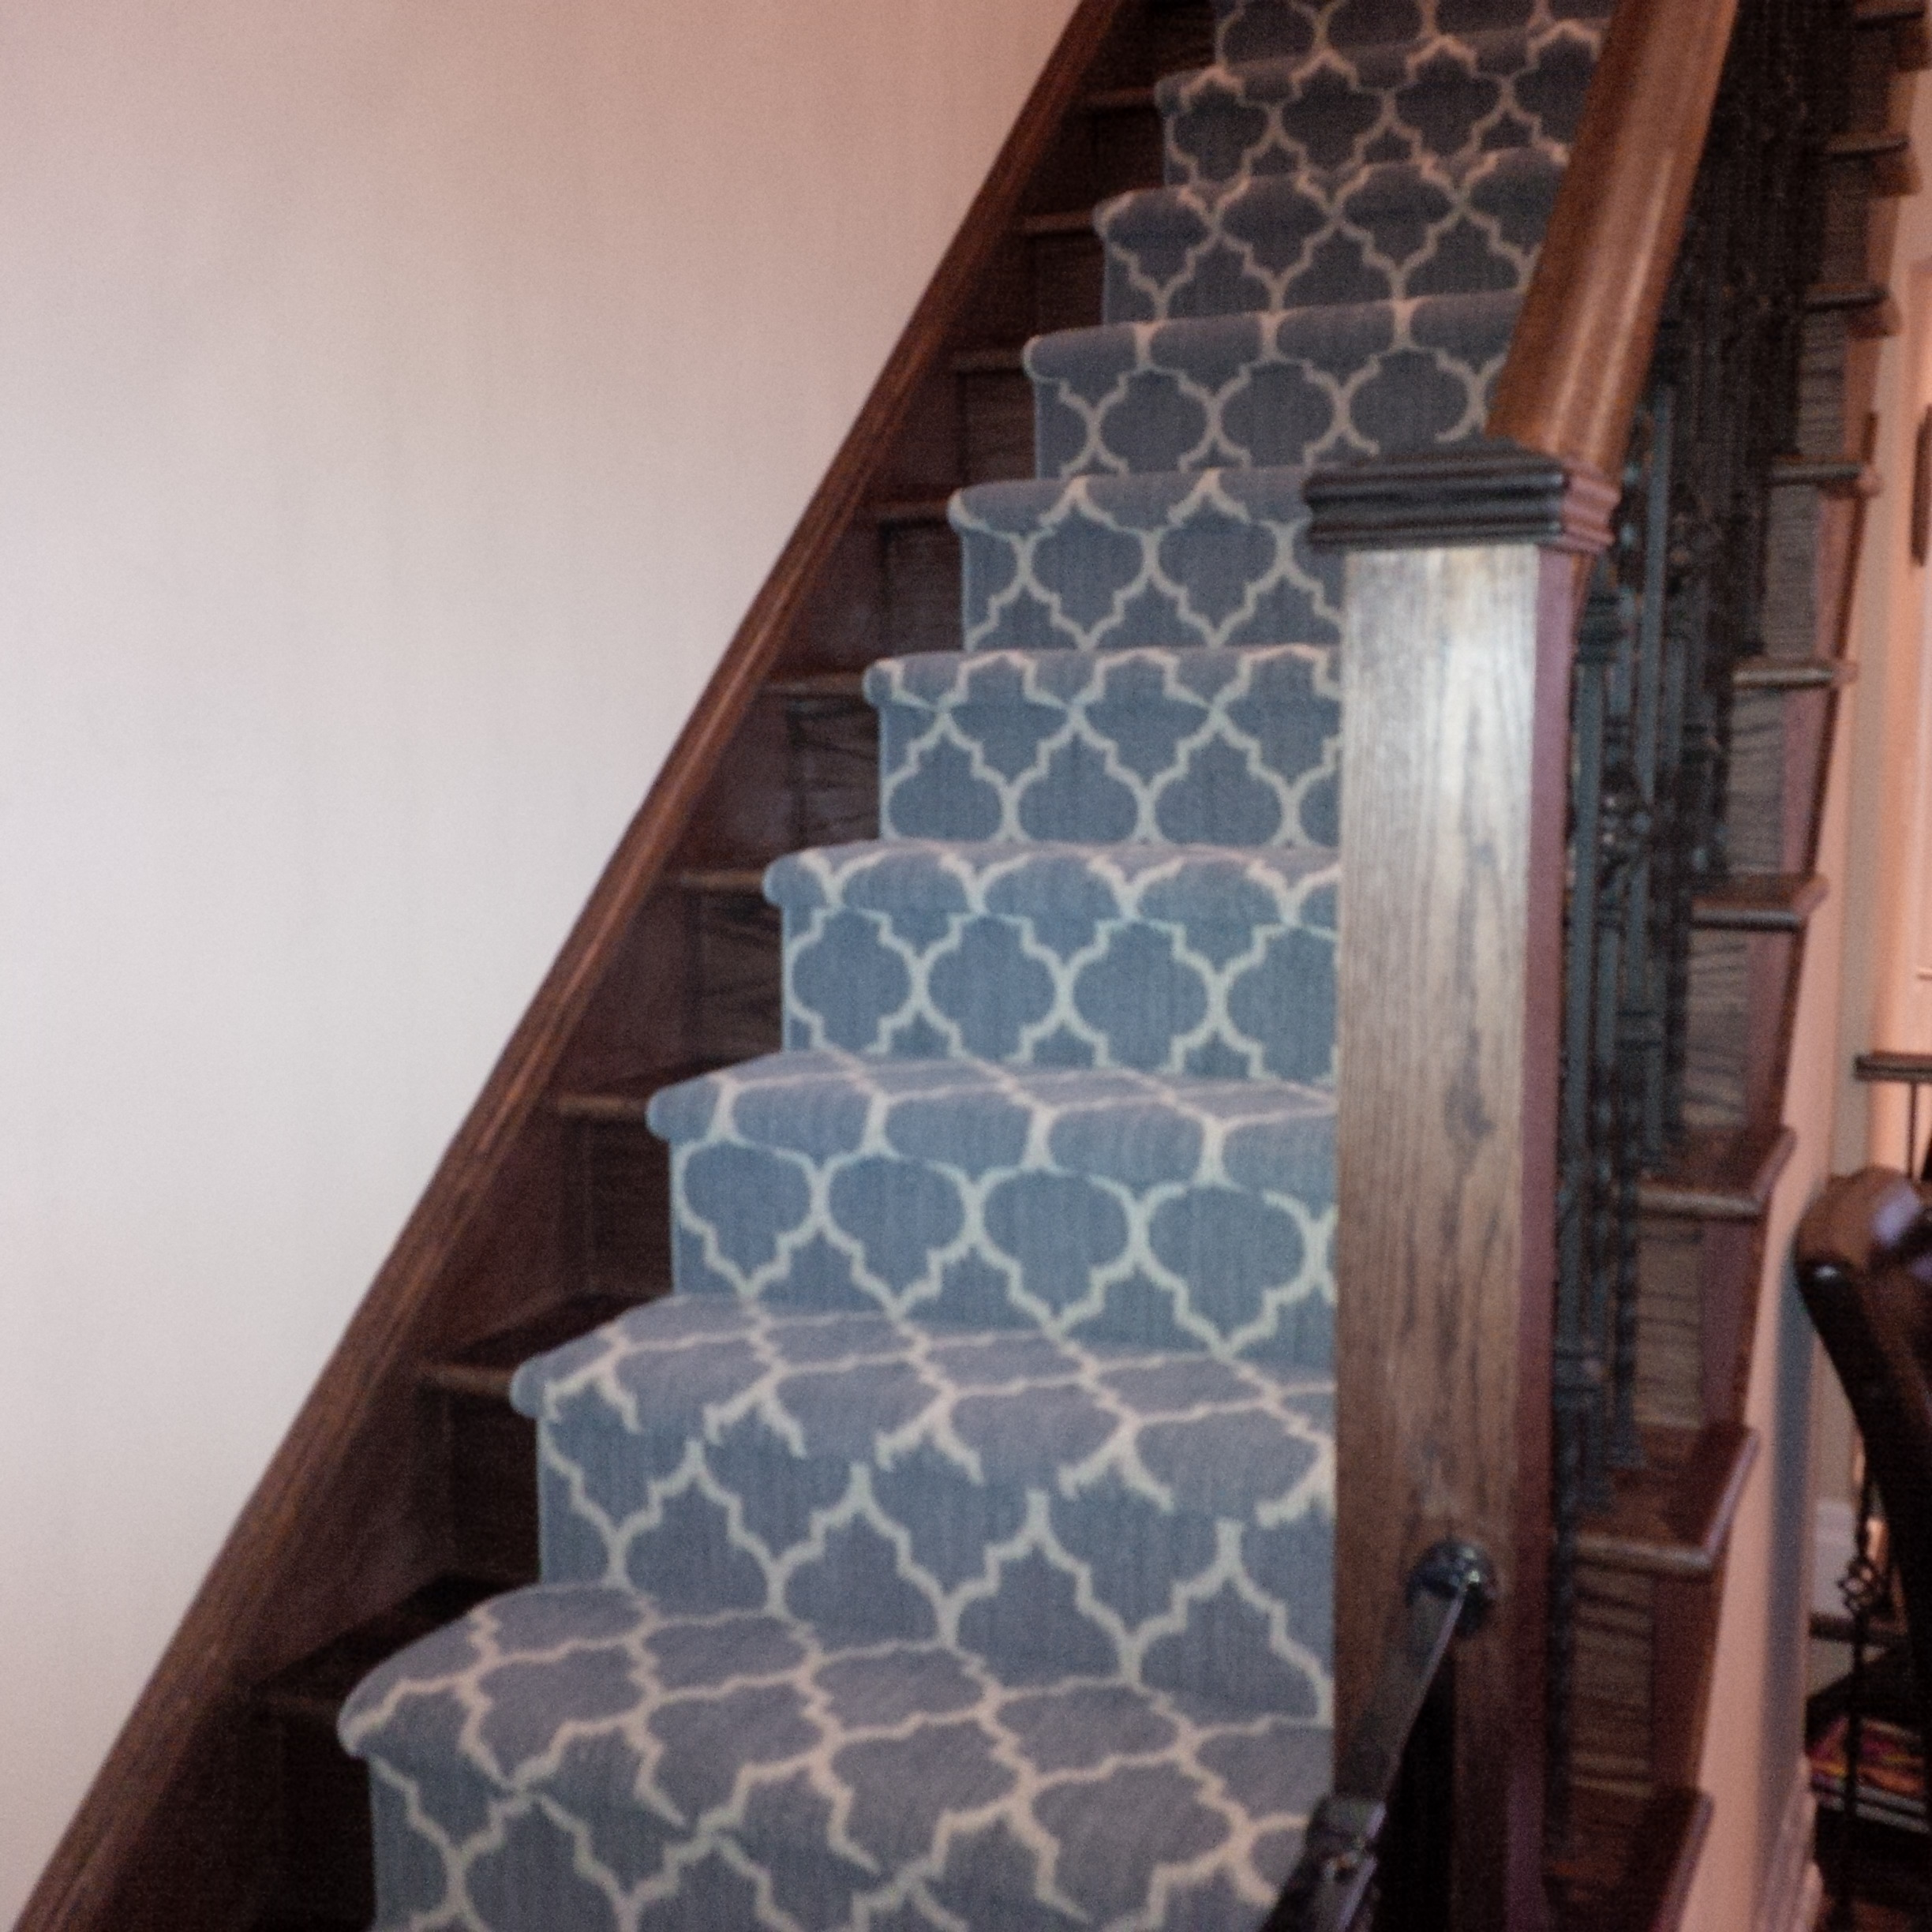 ... Blue Carpet Runner For Stairs In Geometric Pattern ...